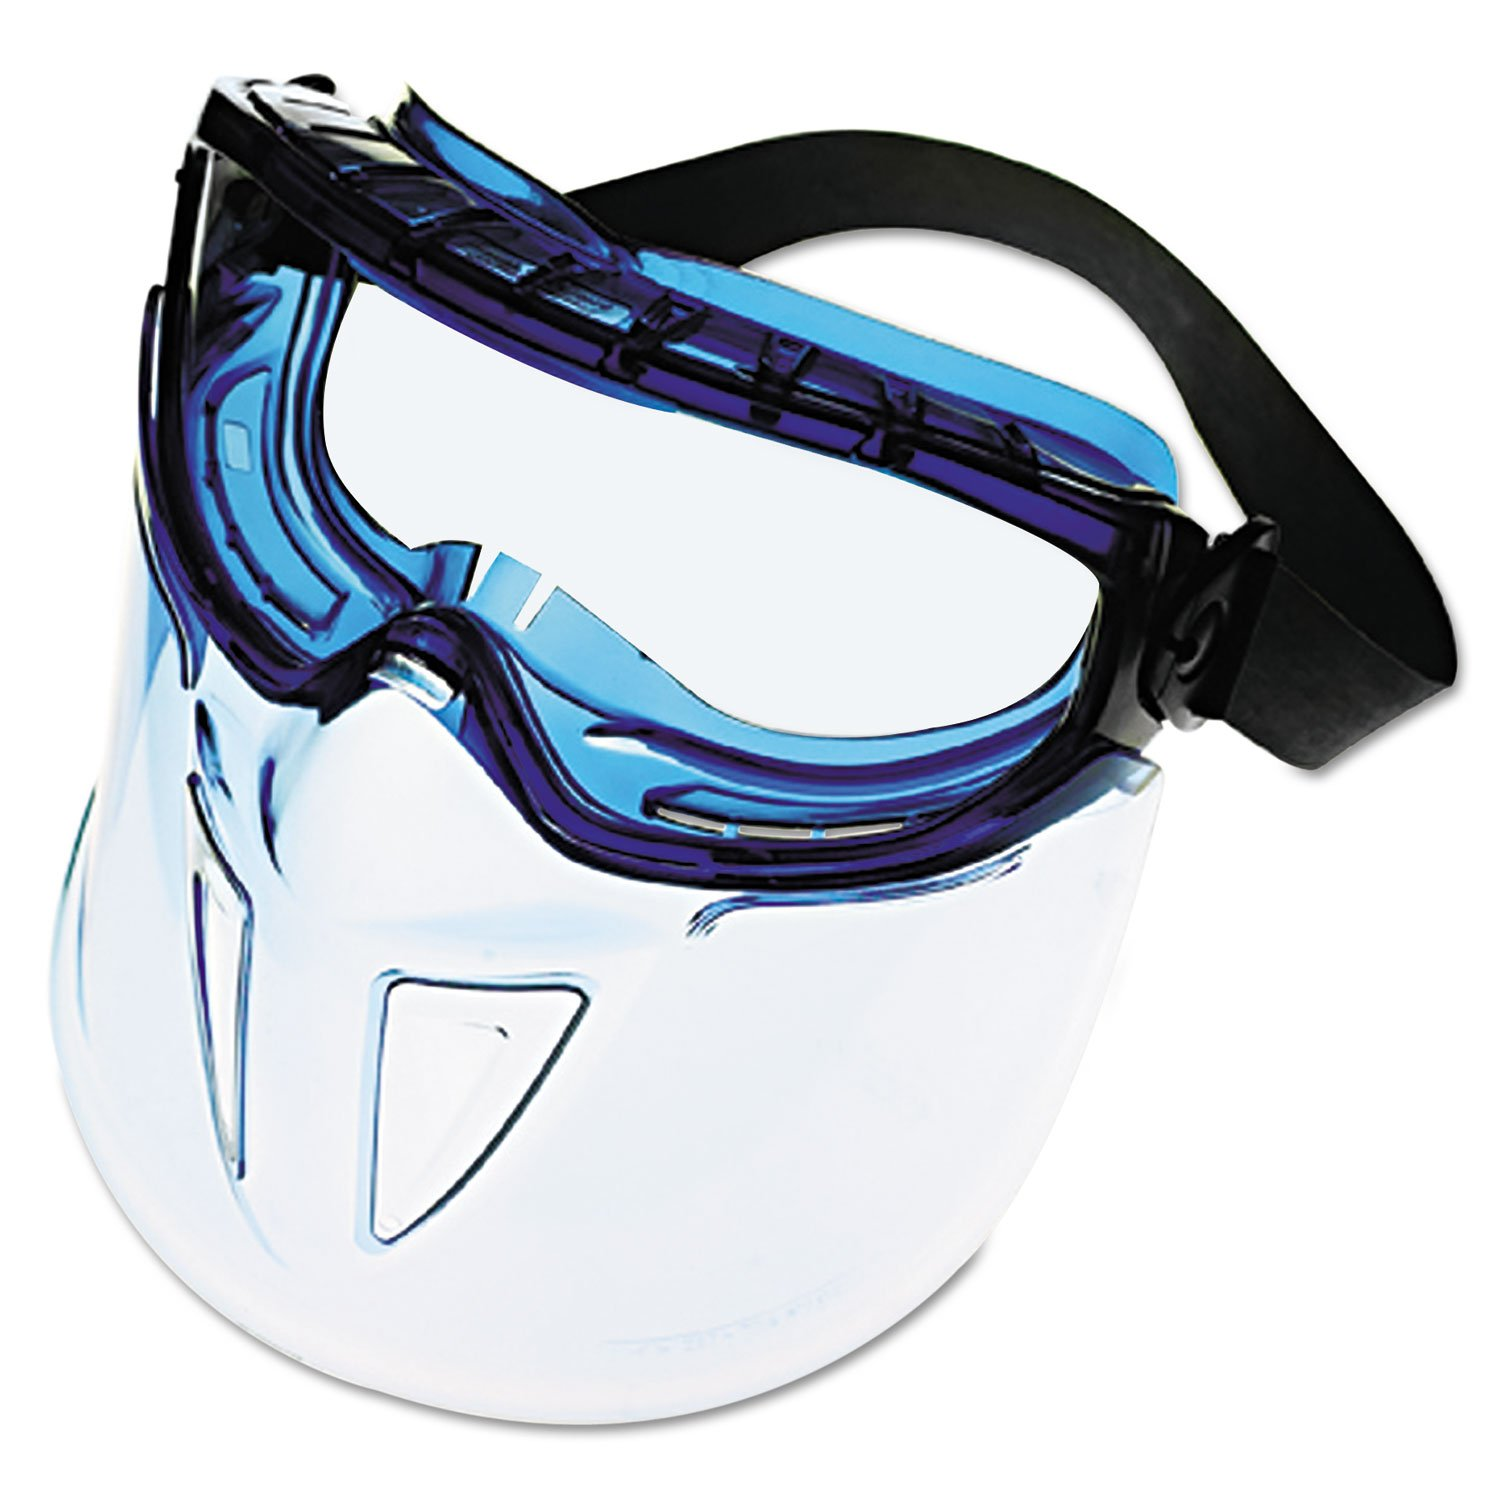 Jackson Safety 18629 V90 SHIELD Goggles, Clear/Blue by Jackson Safety (Image #1)